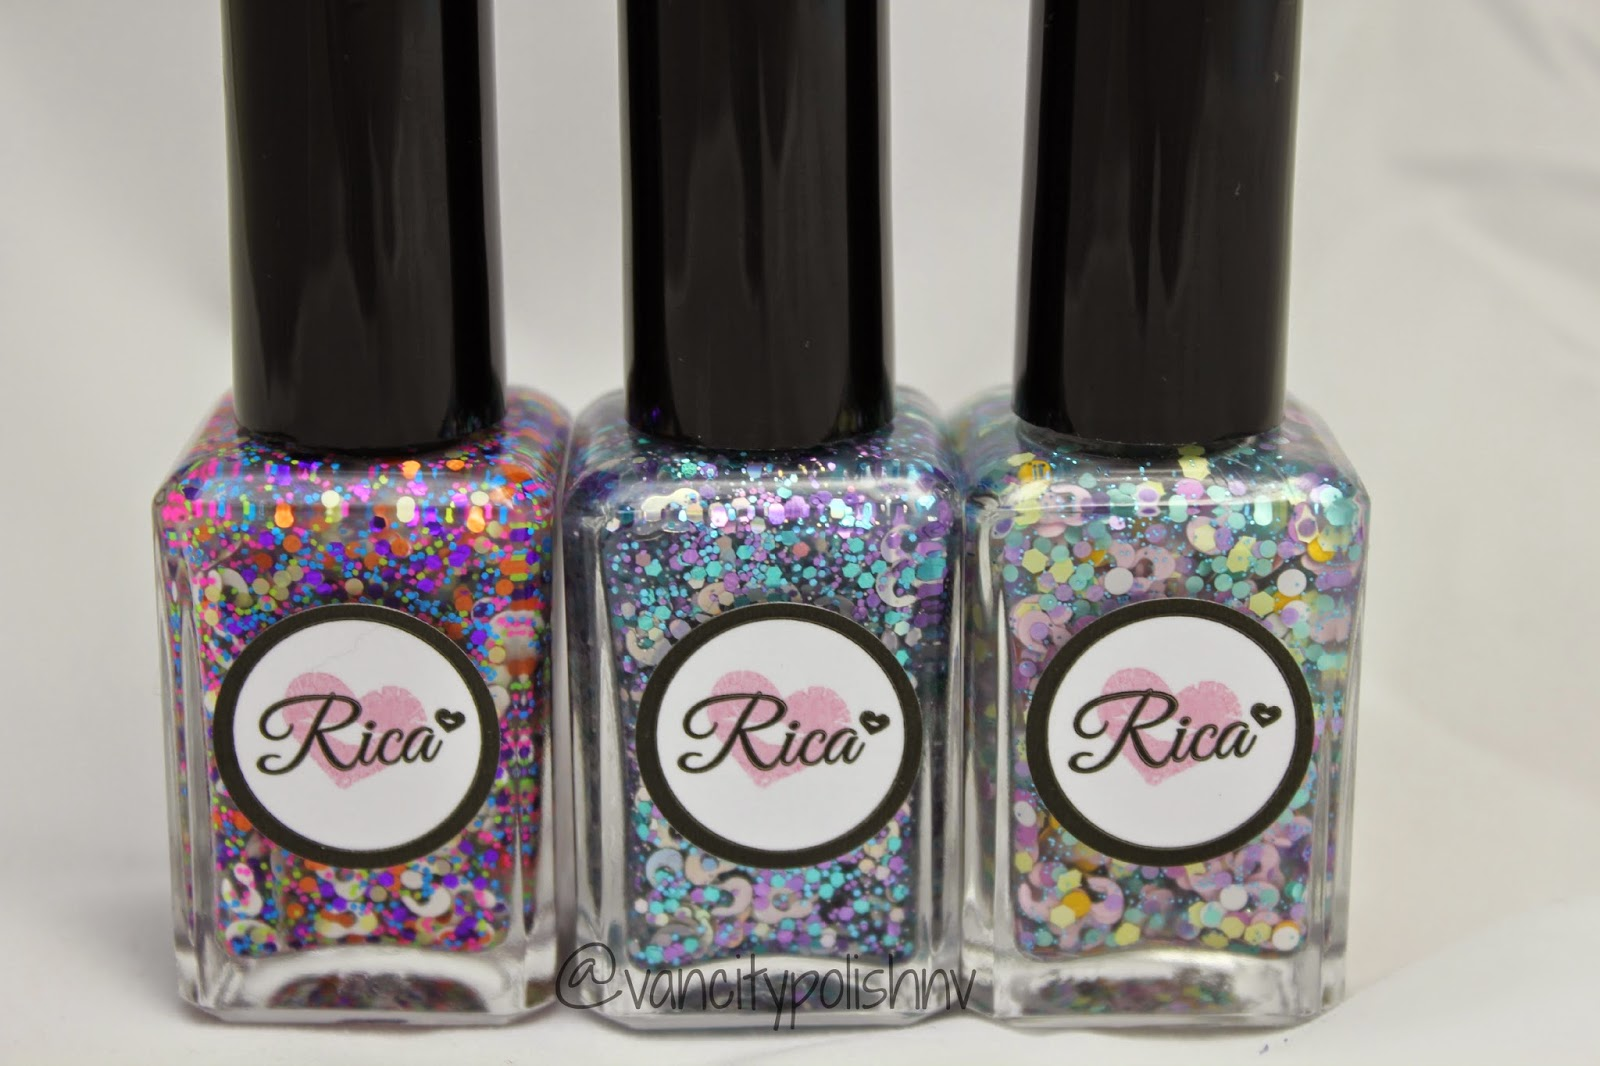 Rica leopard glitter polishes